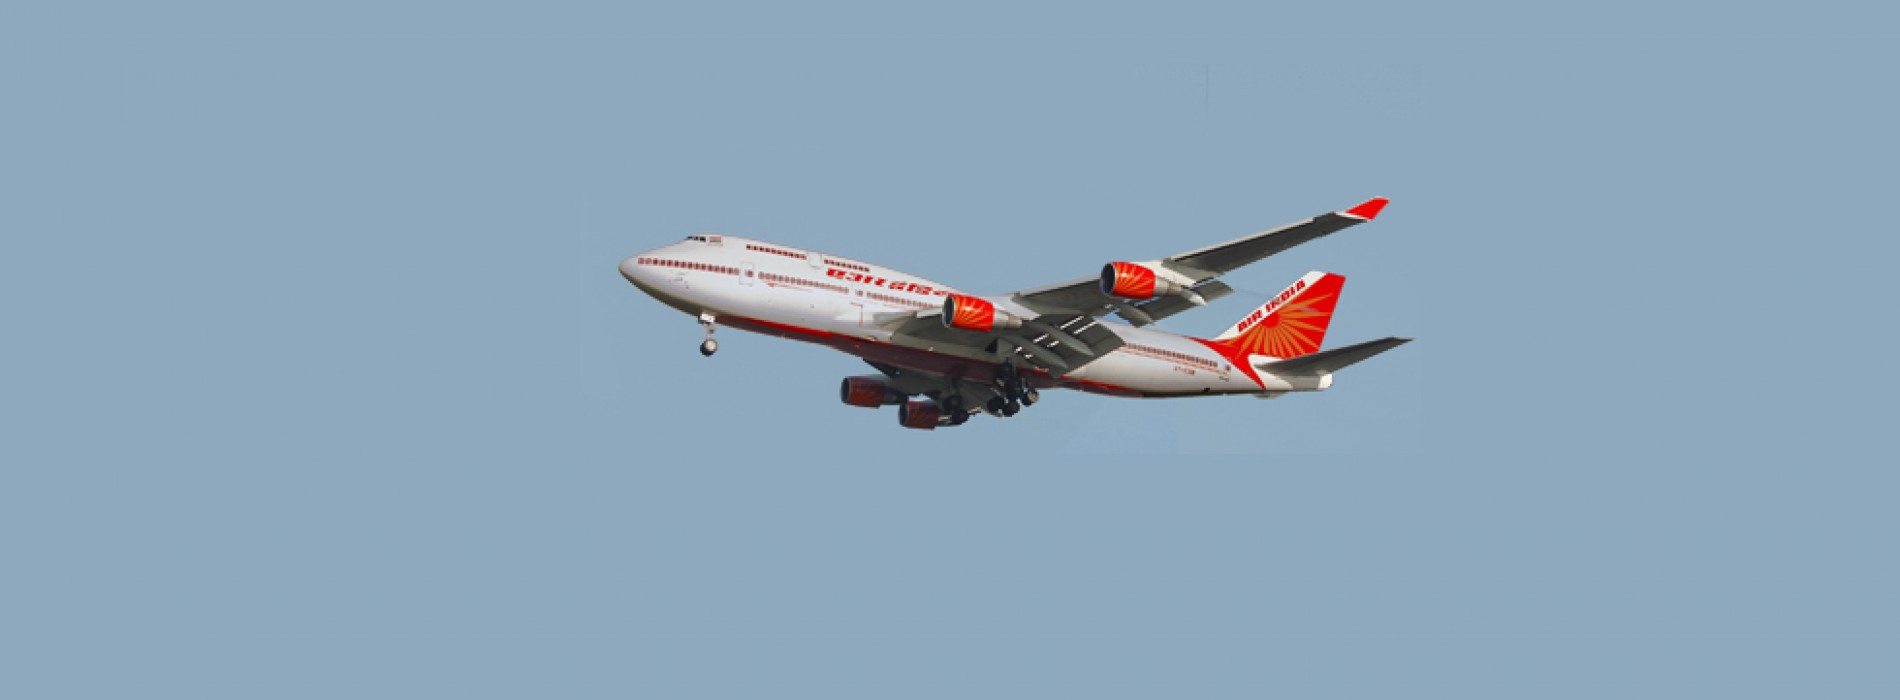 Air India looks to vacate unused space at airports and save on rentals